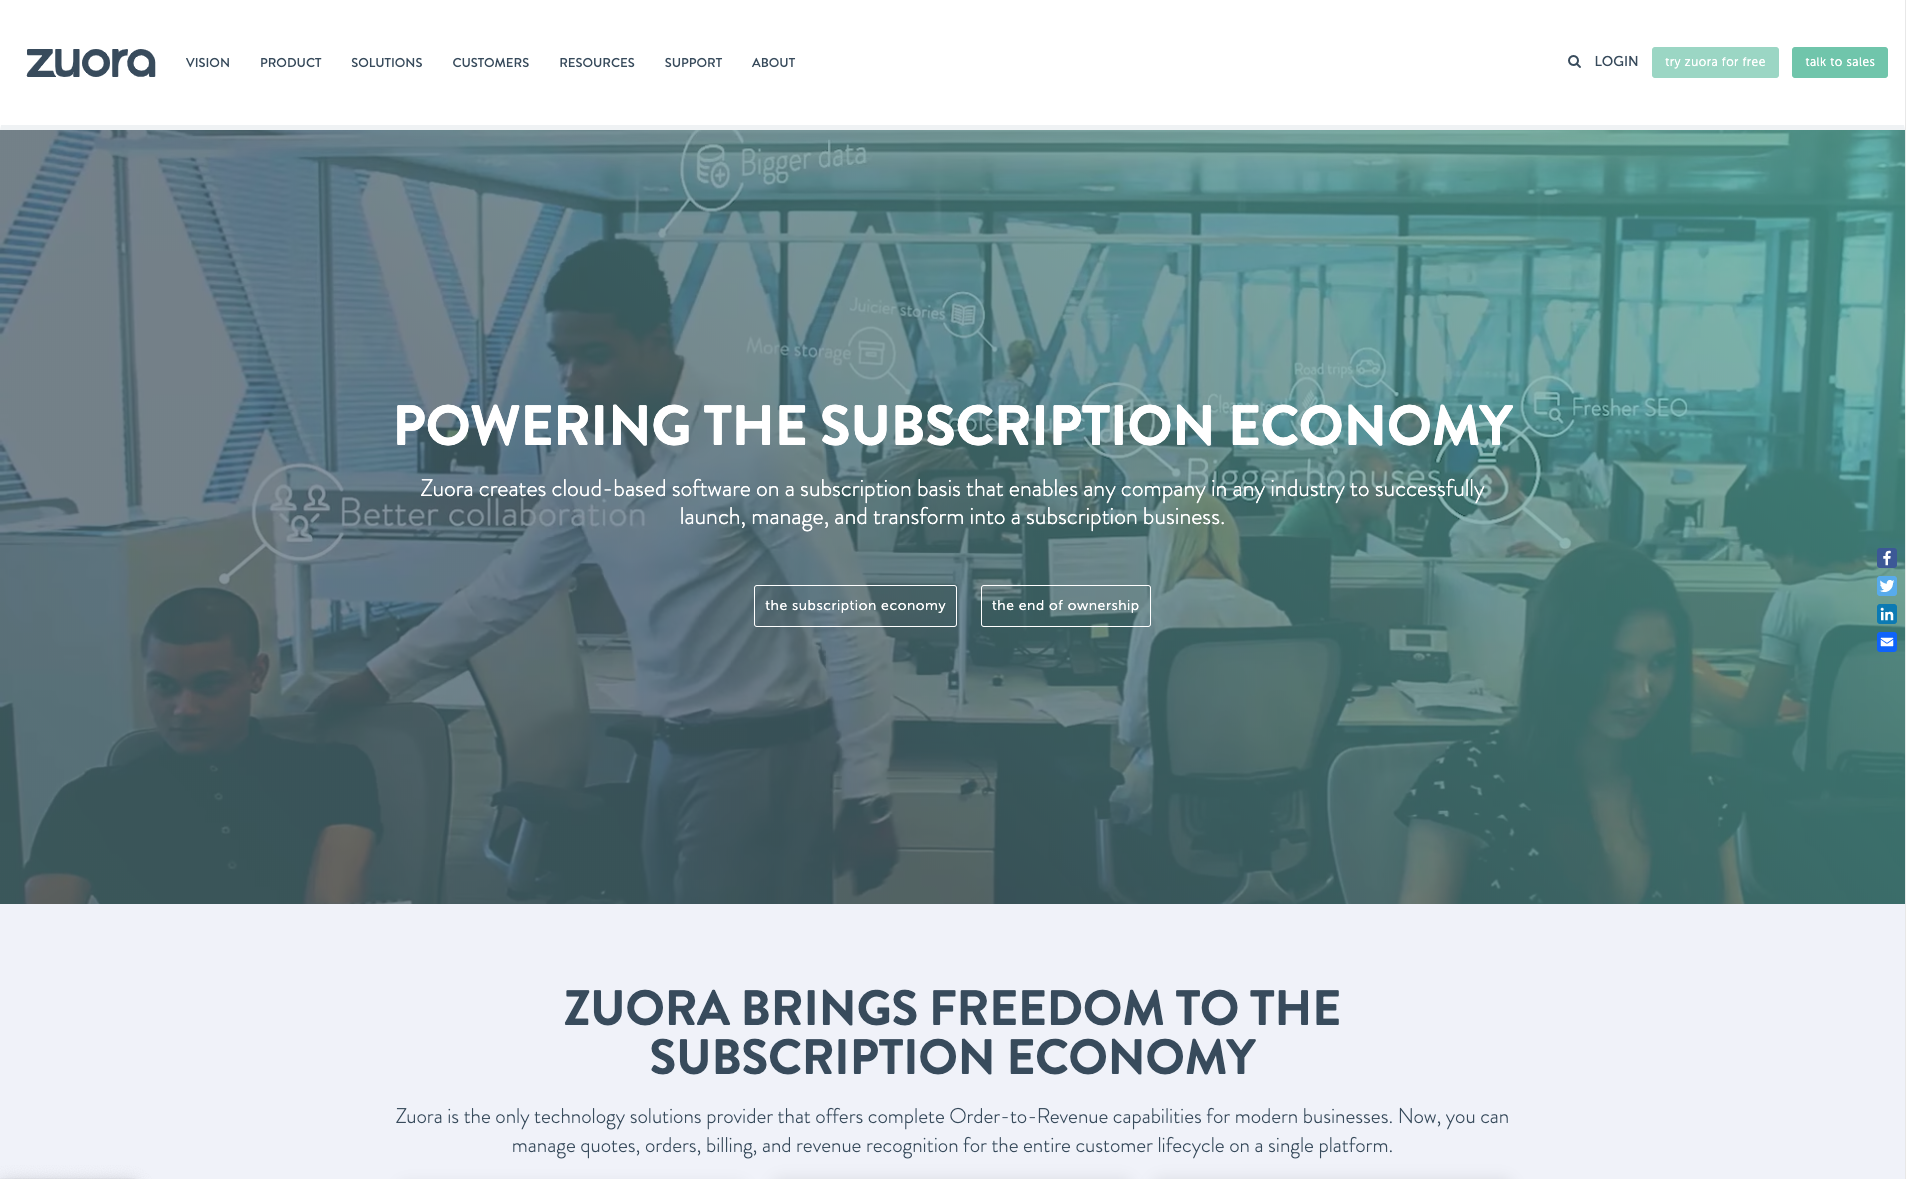 Zuora website